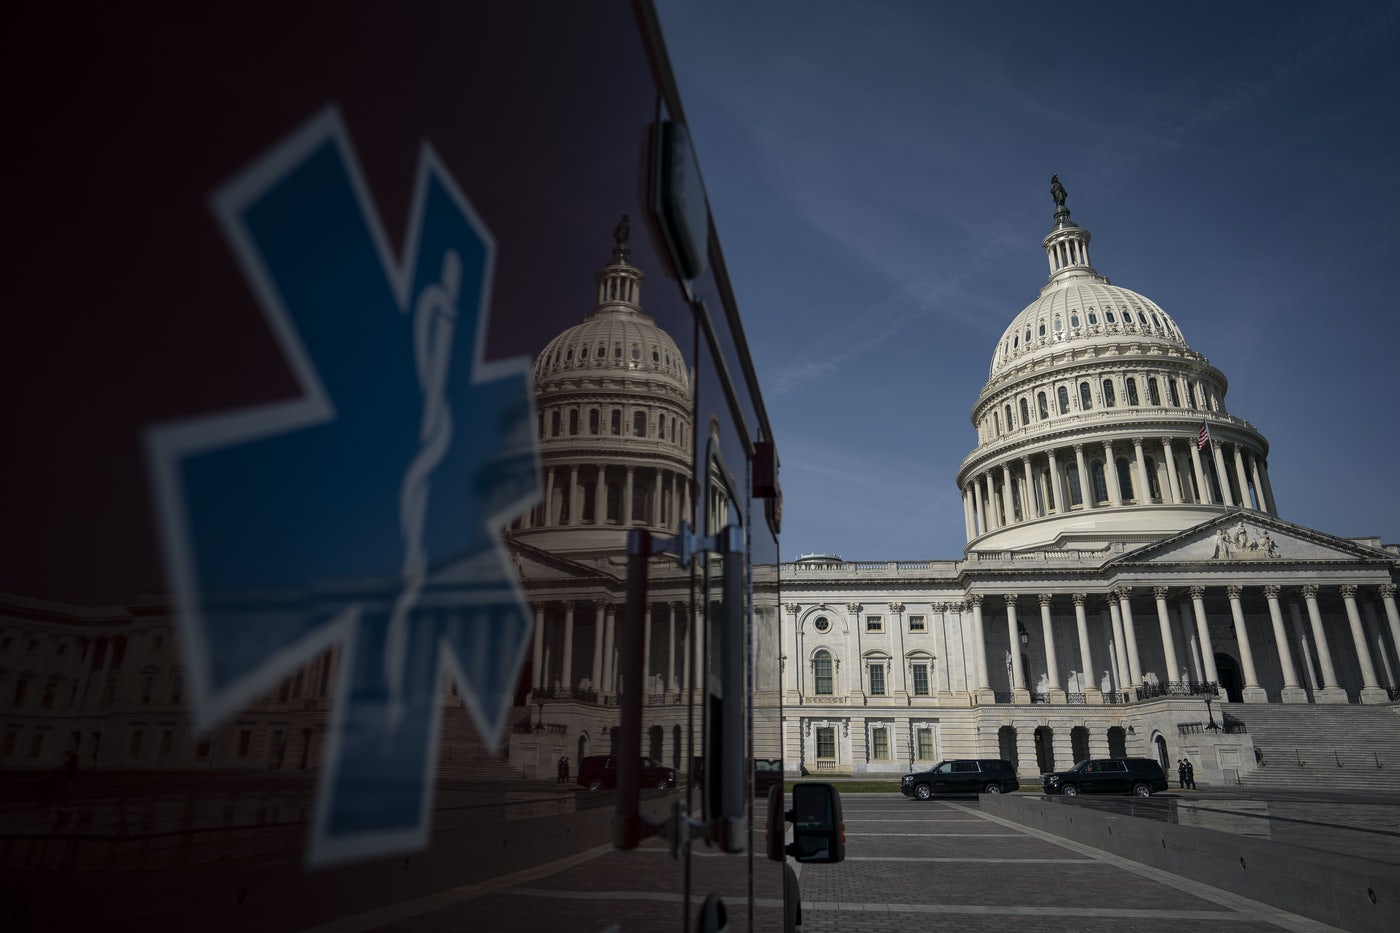 The U.S. Capitol is reflected on the side of an ambulance.